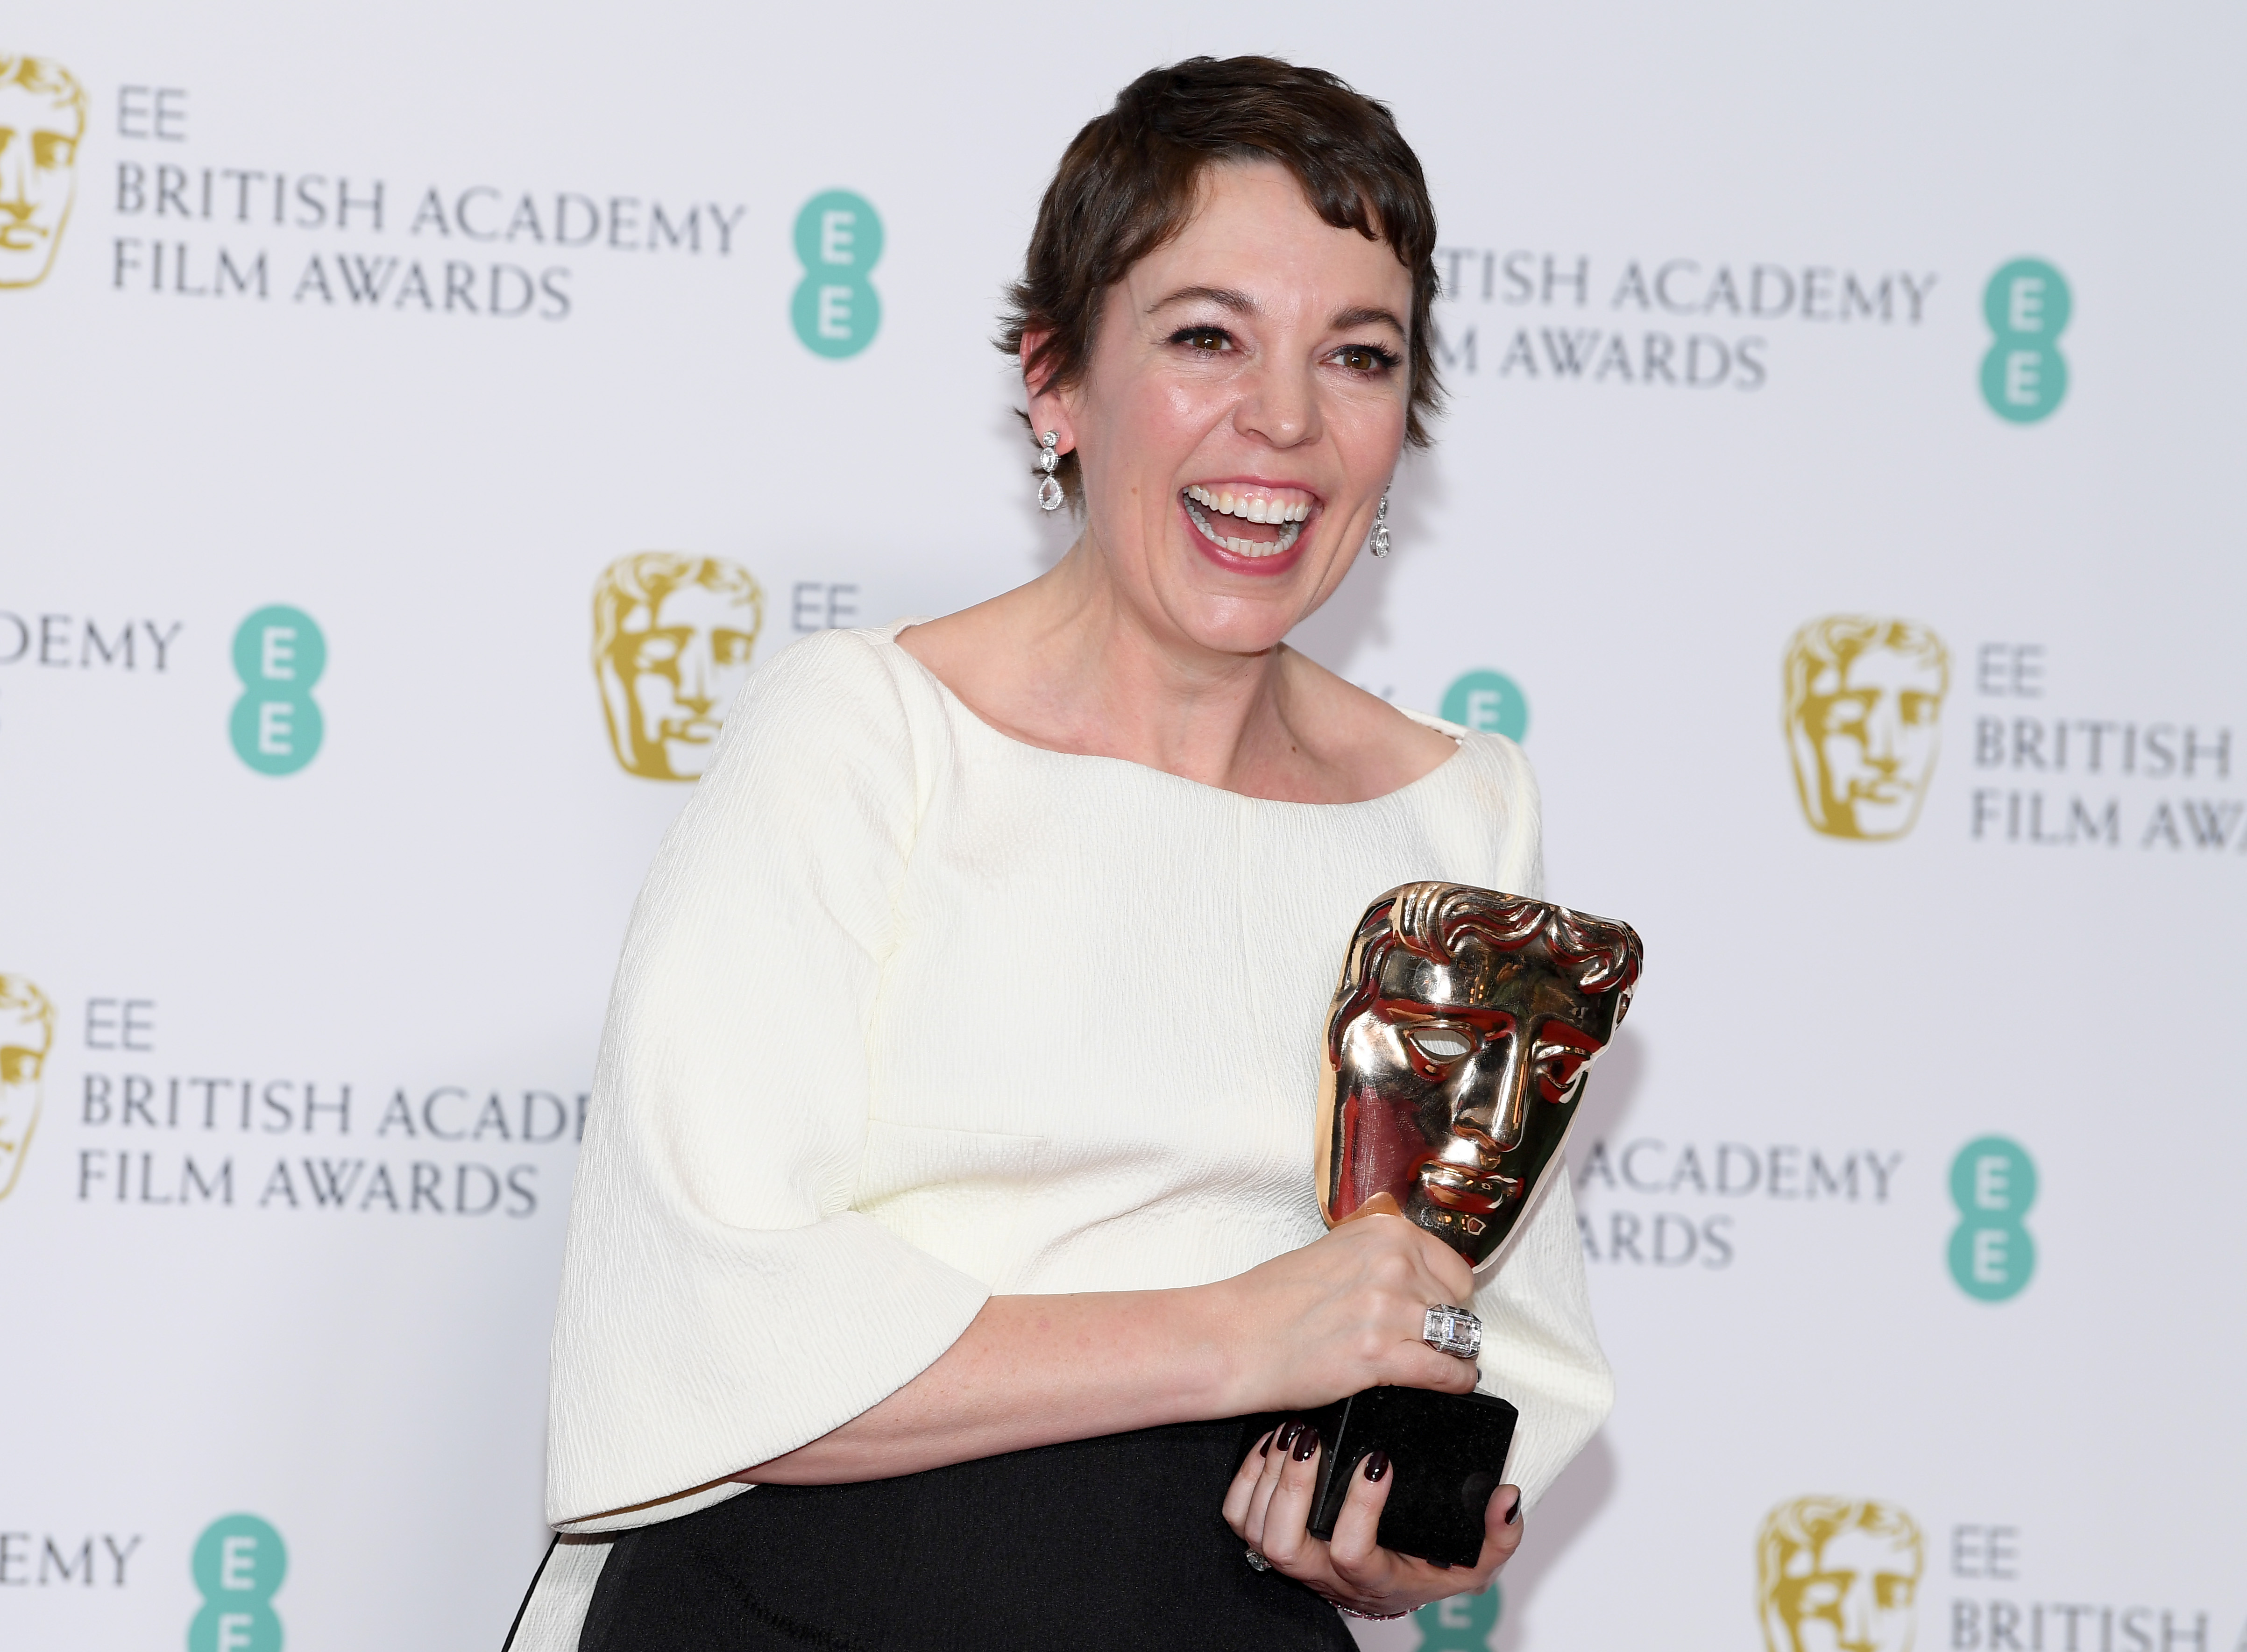 Olivia Colman wins Leading Actress award for The Favourite at the Baftas 2019.